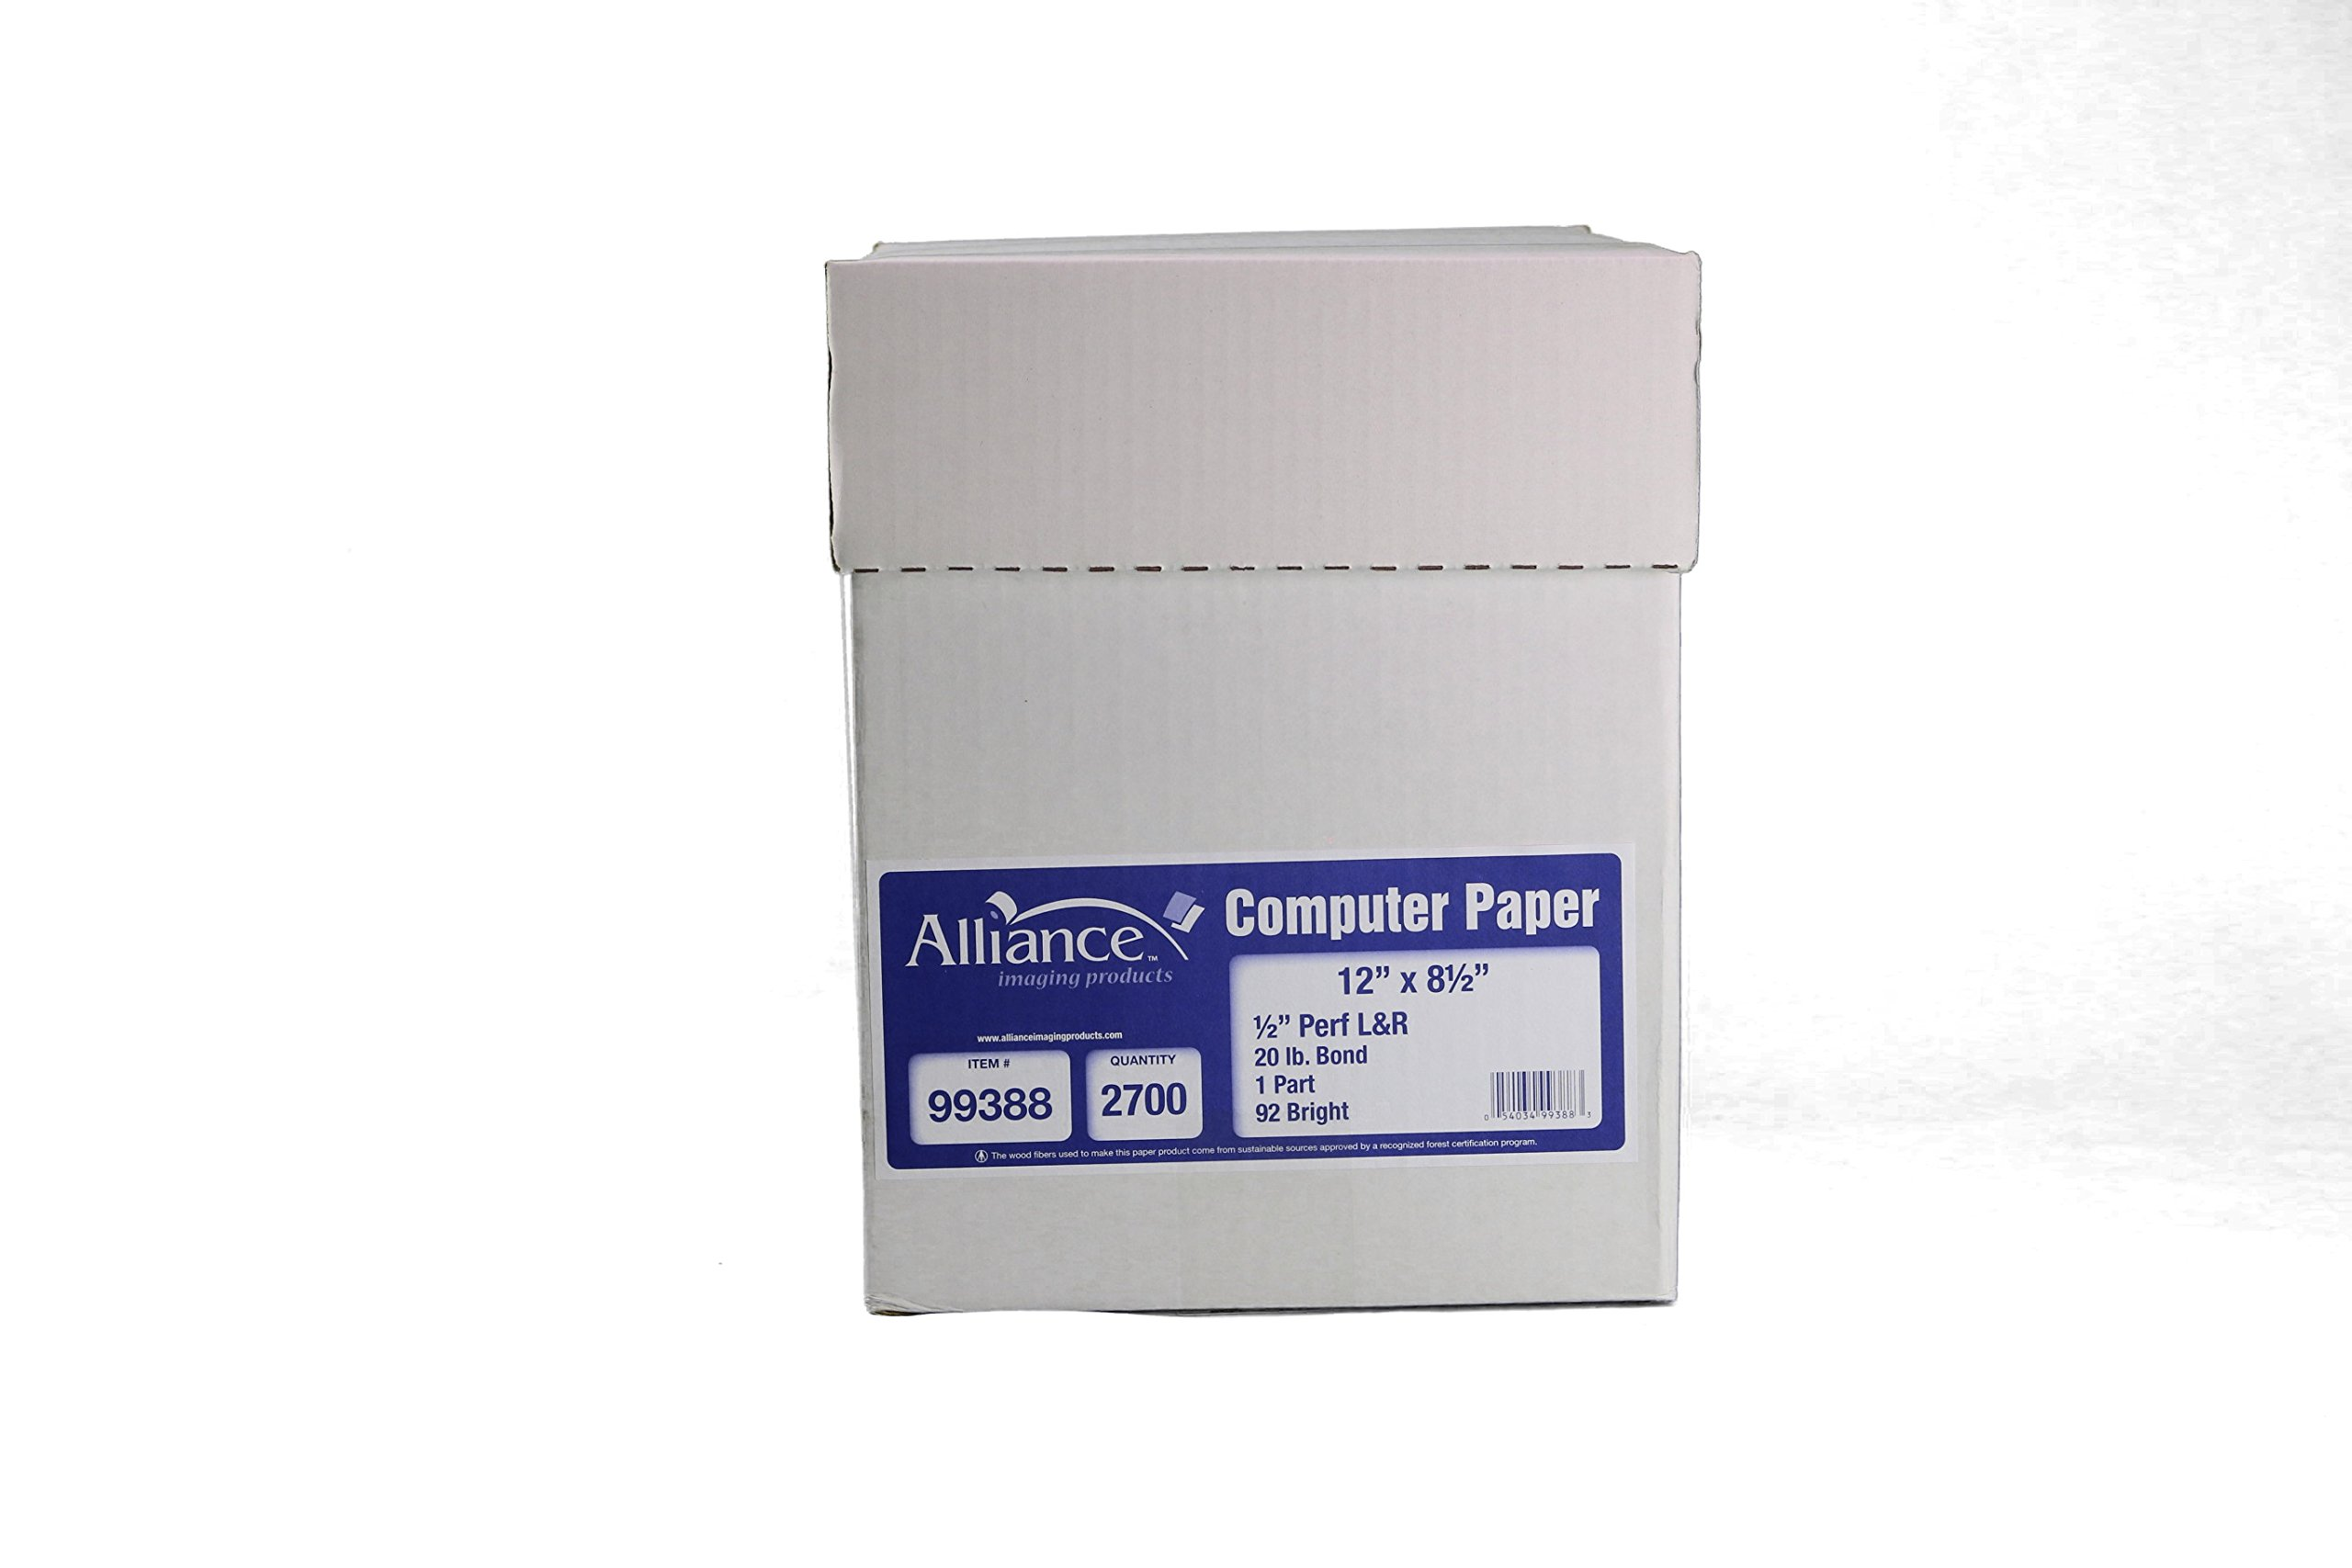 Alliance Continuous Computer Paper 12'' x 8-1/2'' Blank Left & Right Perforated 1-Part 92 Bright 20lb 2700 Sheets per Carton by Alliance (Image #2)